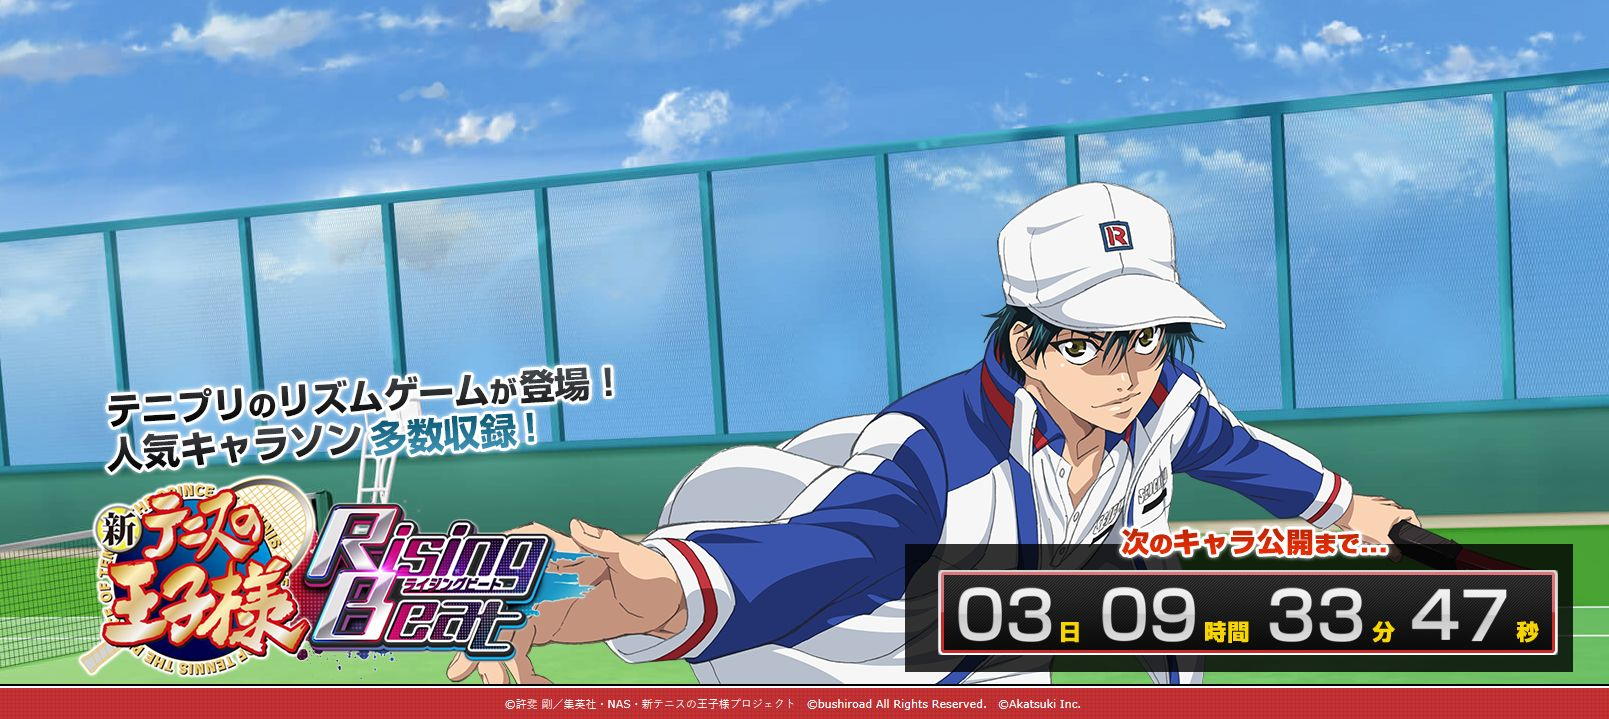 prince of tennis game